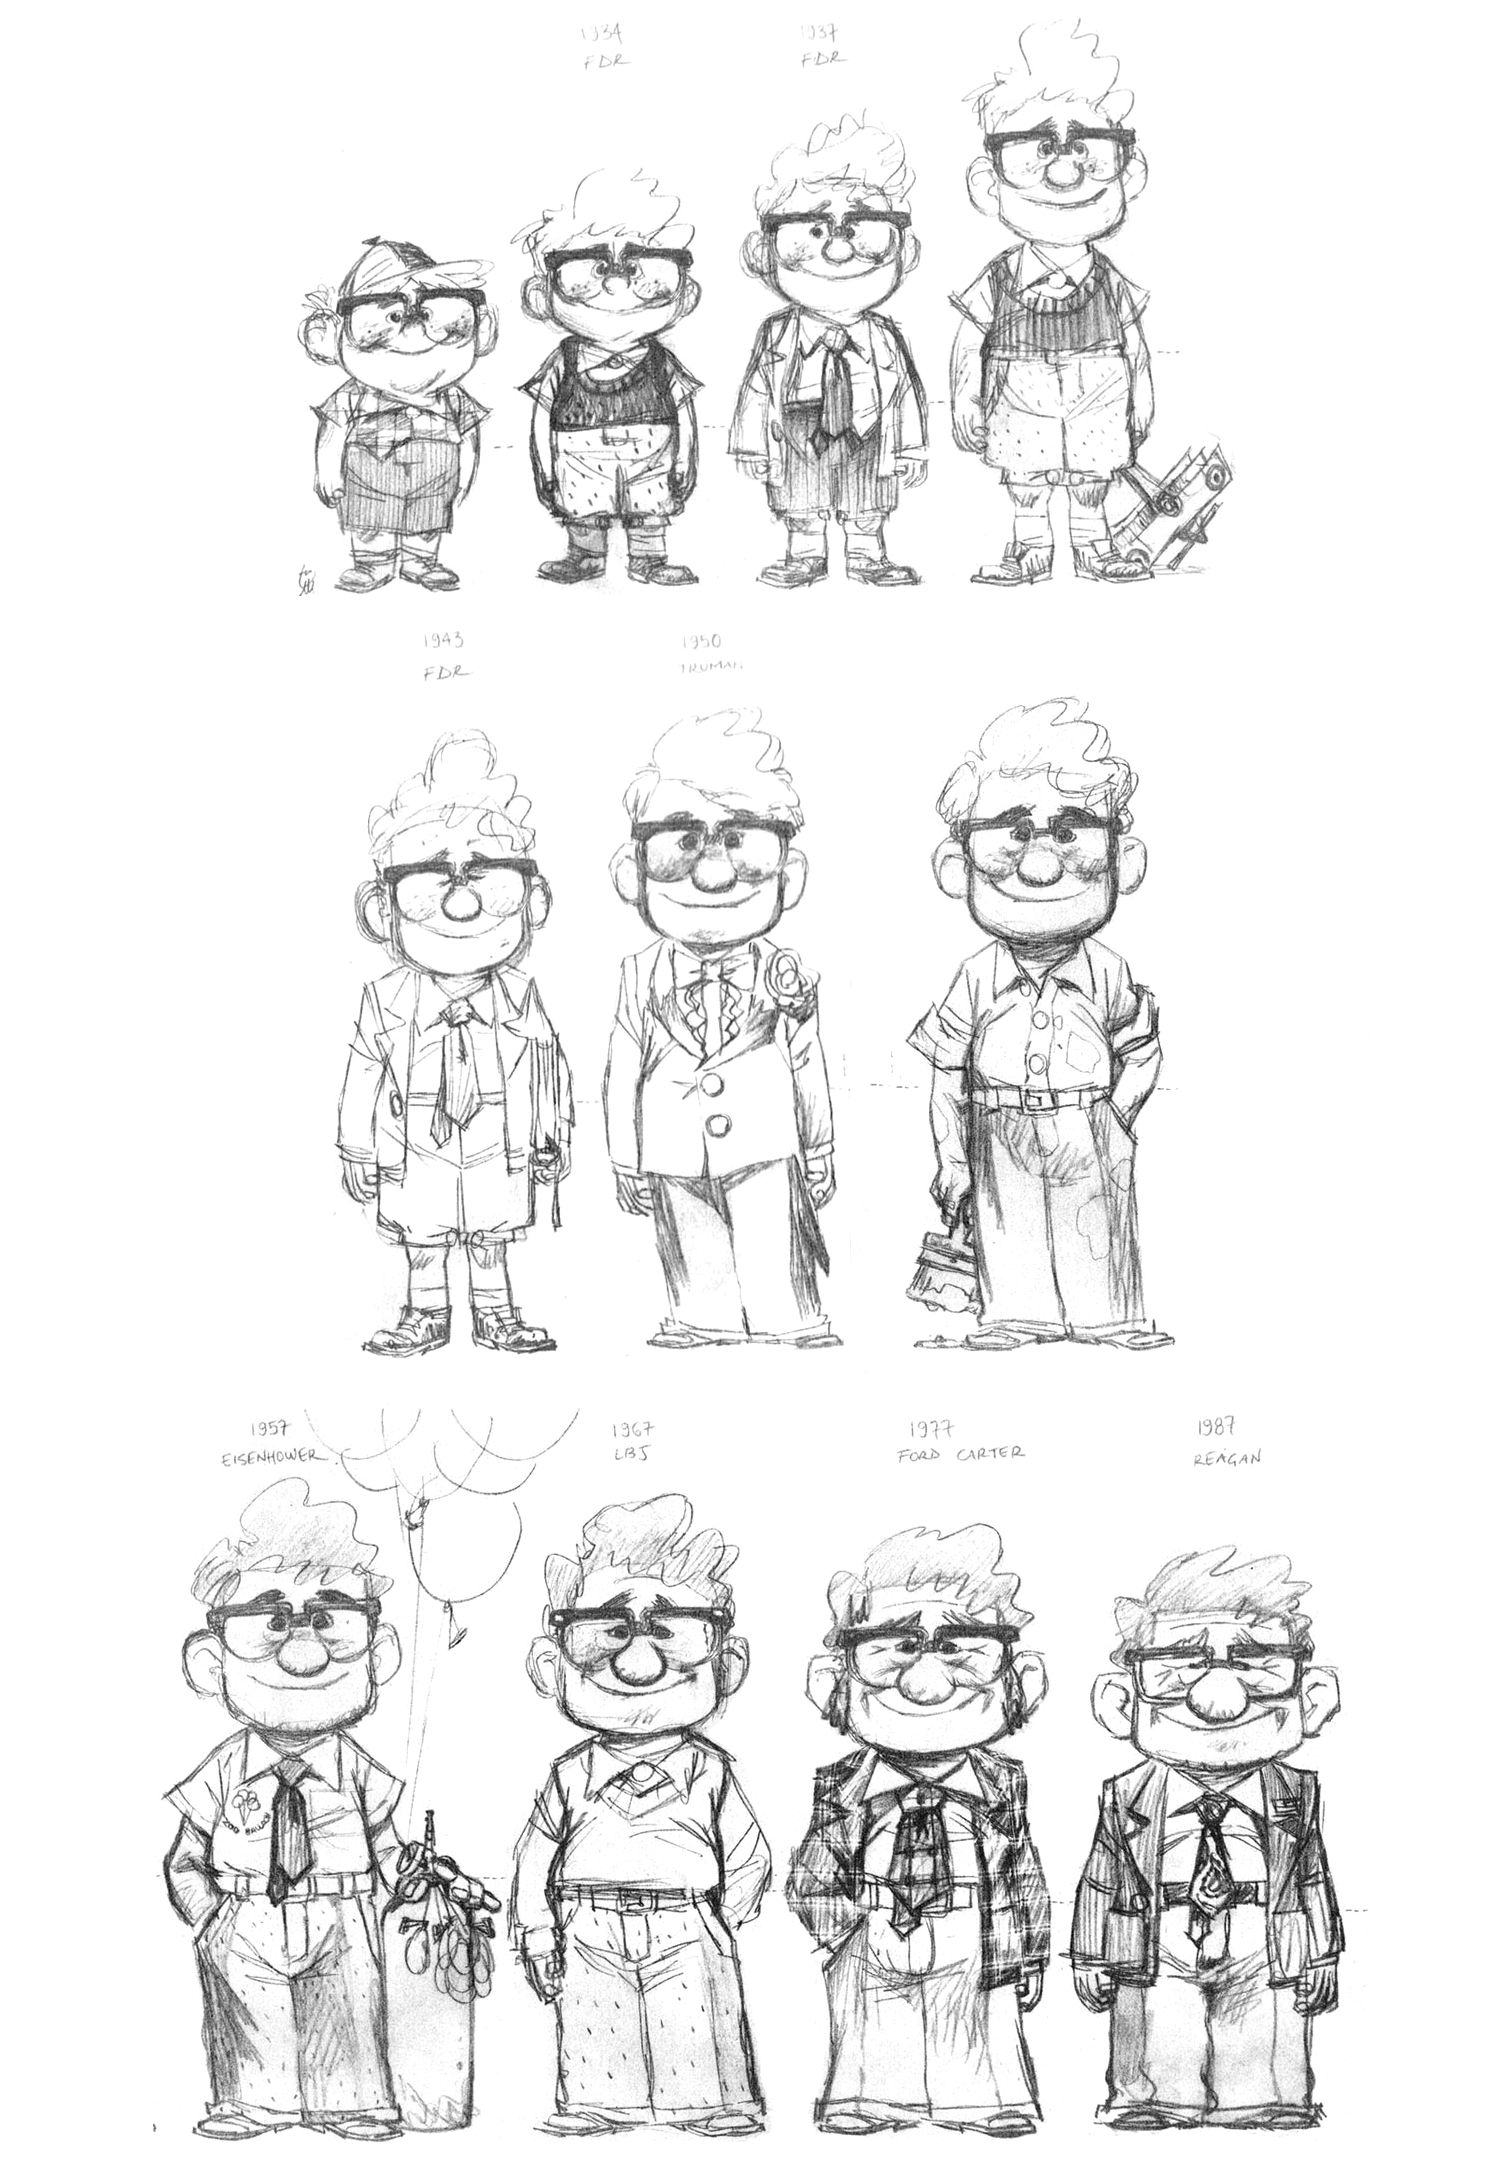 Carl Fredricksen's Age chart from Pixar Animation Studios